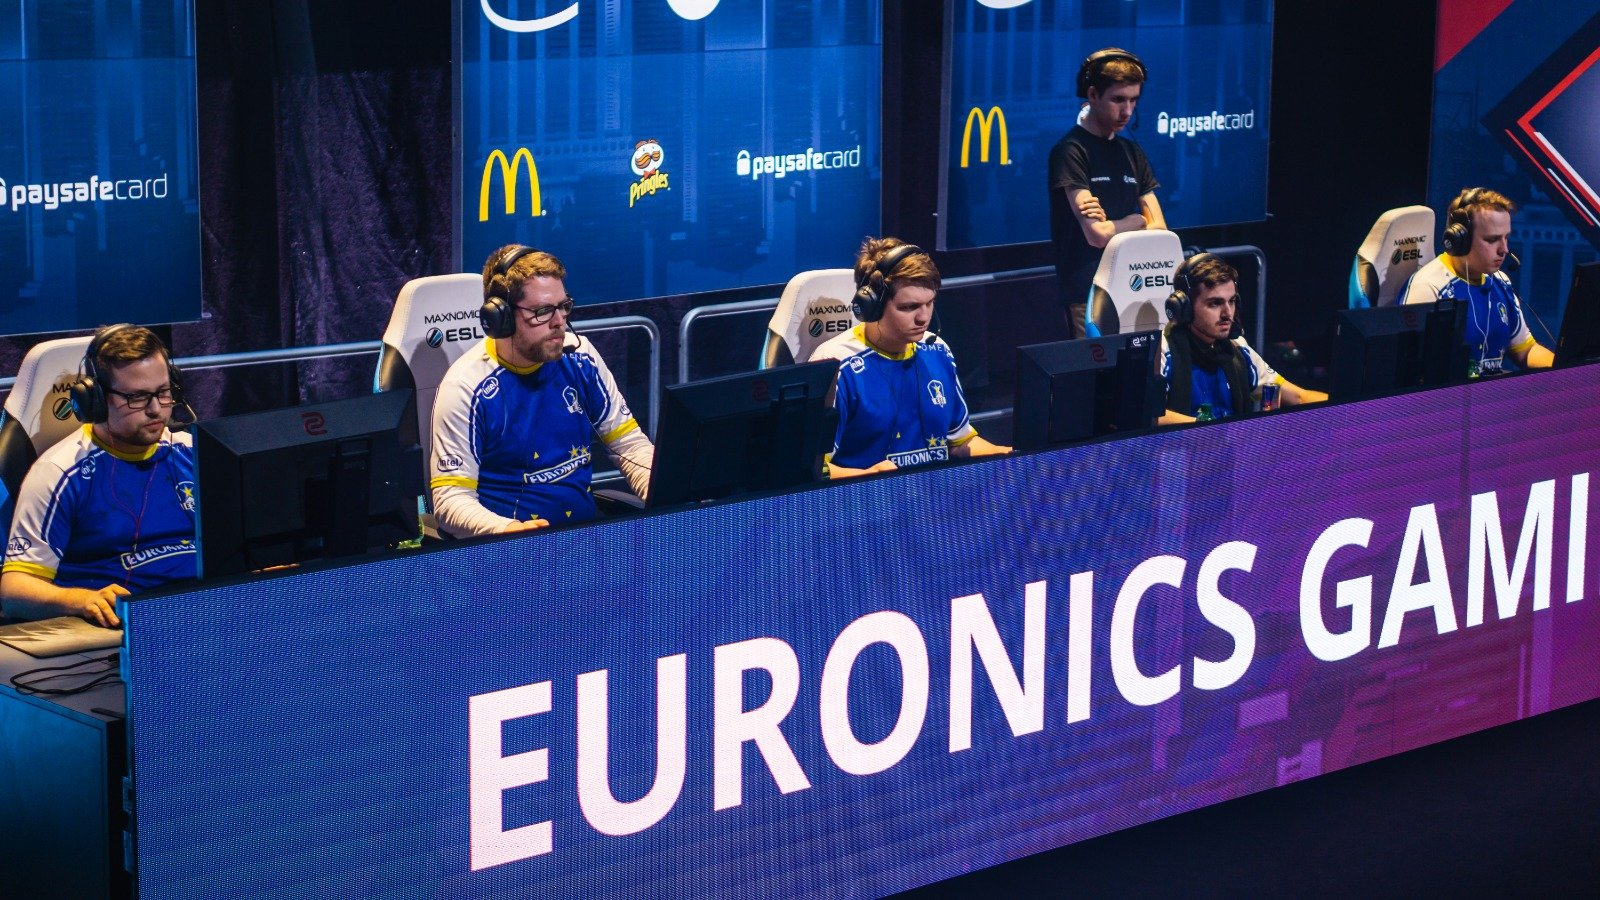 Euronics Gaming Esl